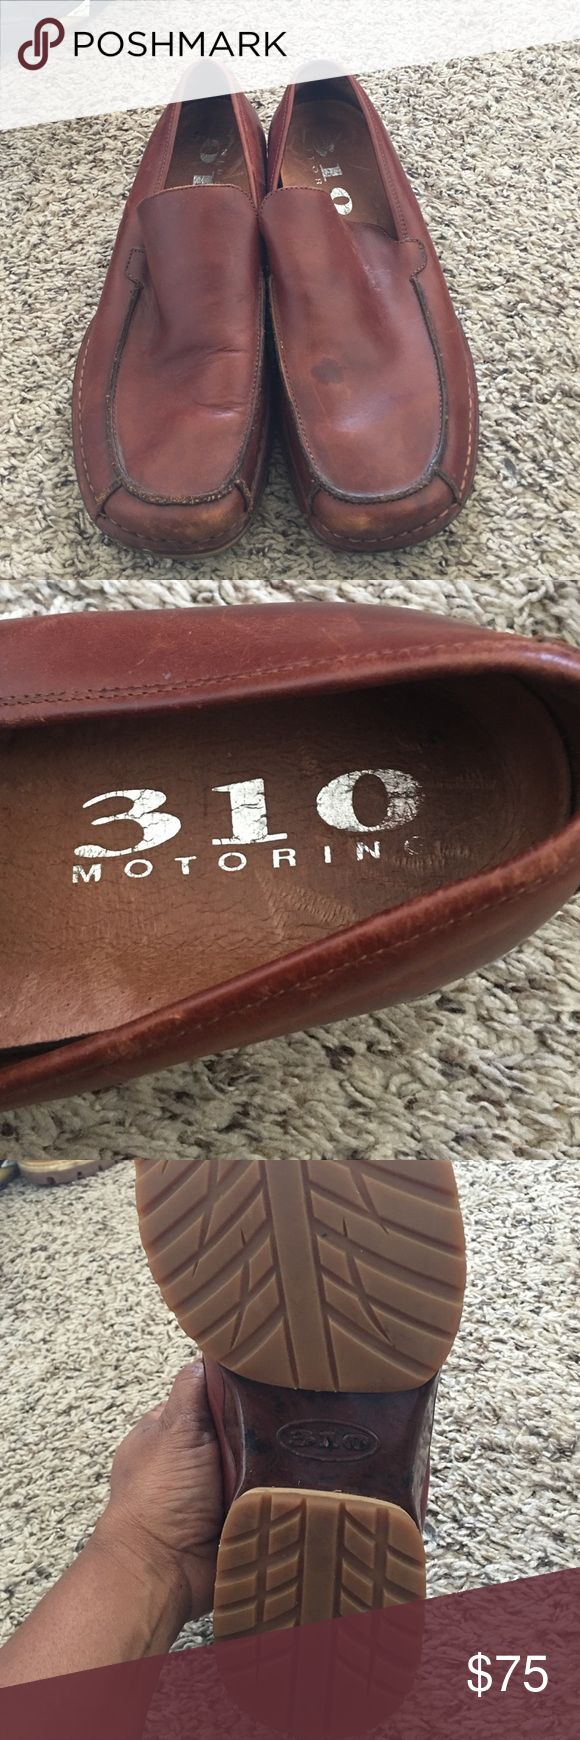 310 motoring brown leather loafer for men! 310 Motoring Men's driving loafer! Brown Leather! Comfortable! Can dress up or down! Great condition! 310 motoring Shoes Loafers & Slip-Ons